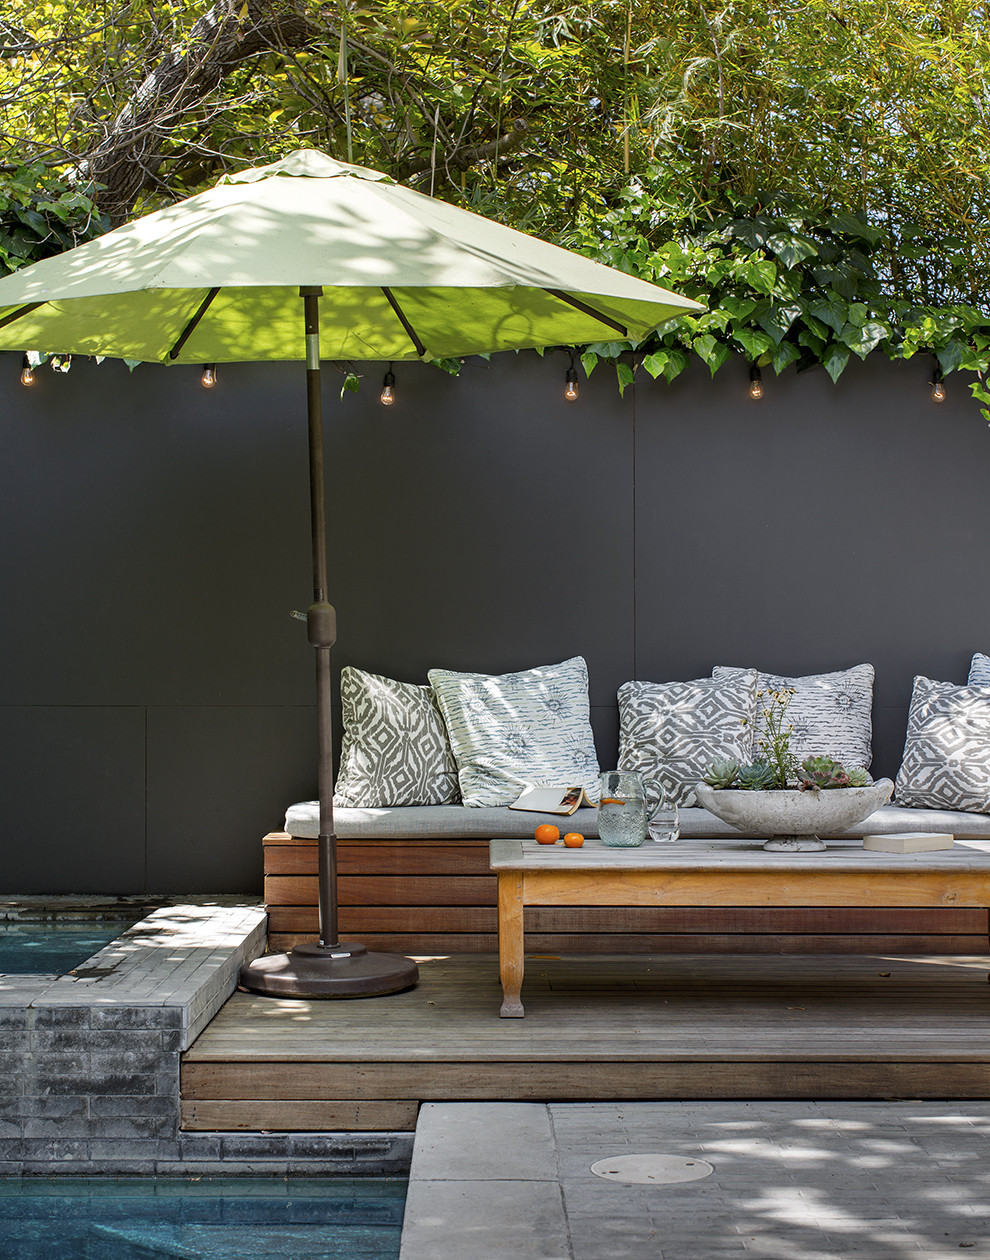 Sun Shade Outdoor Patio Design Ideas Lonny